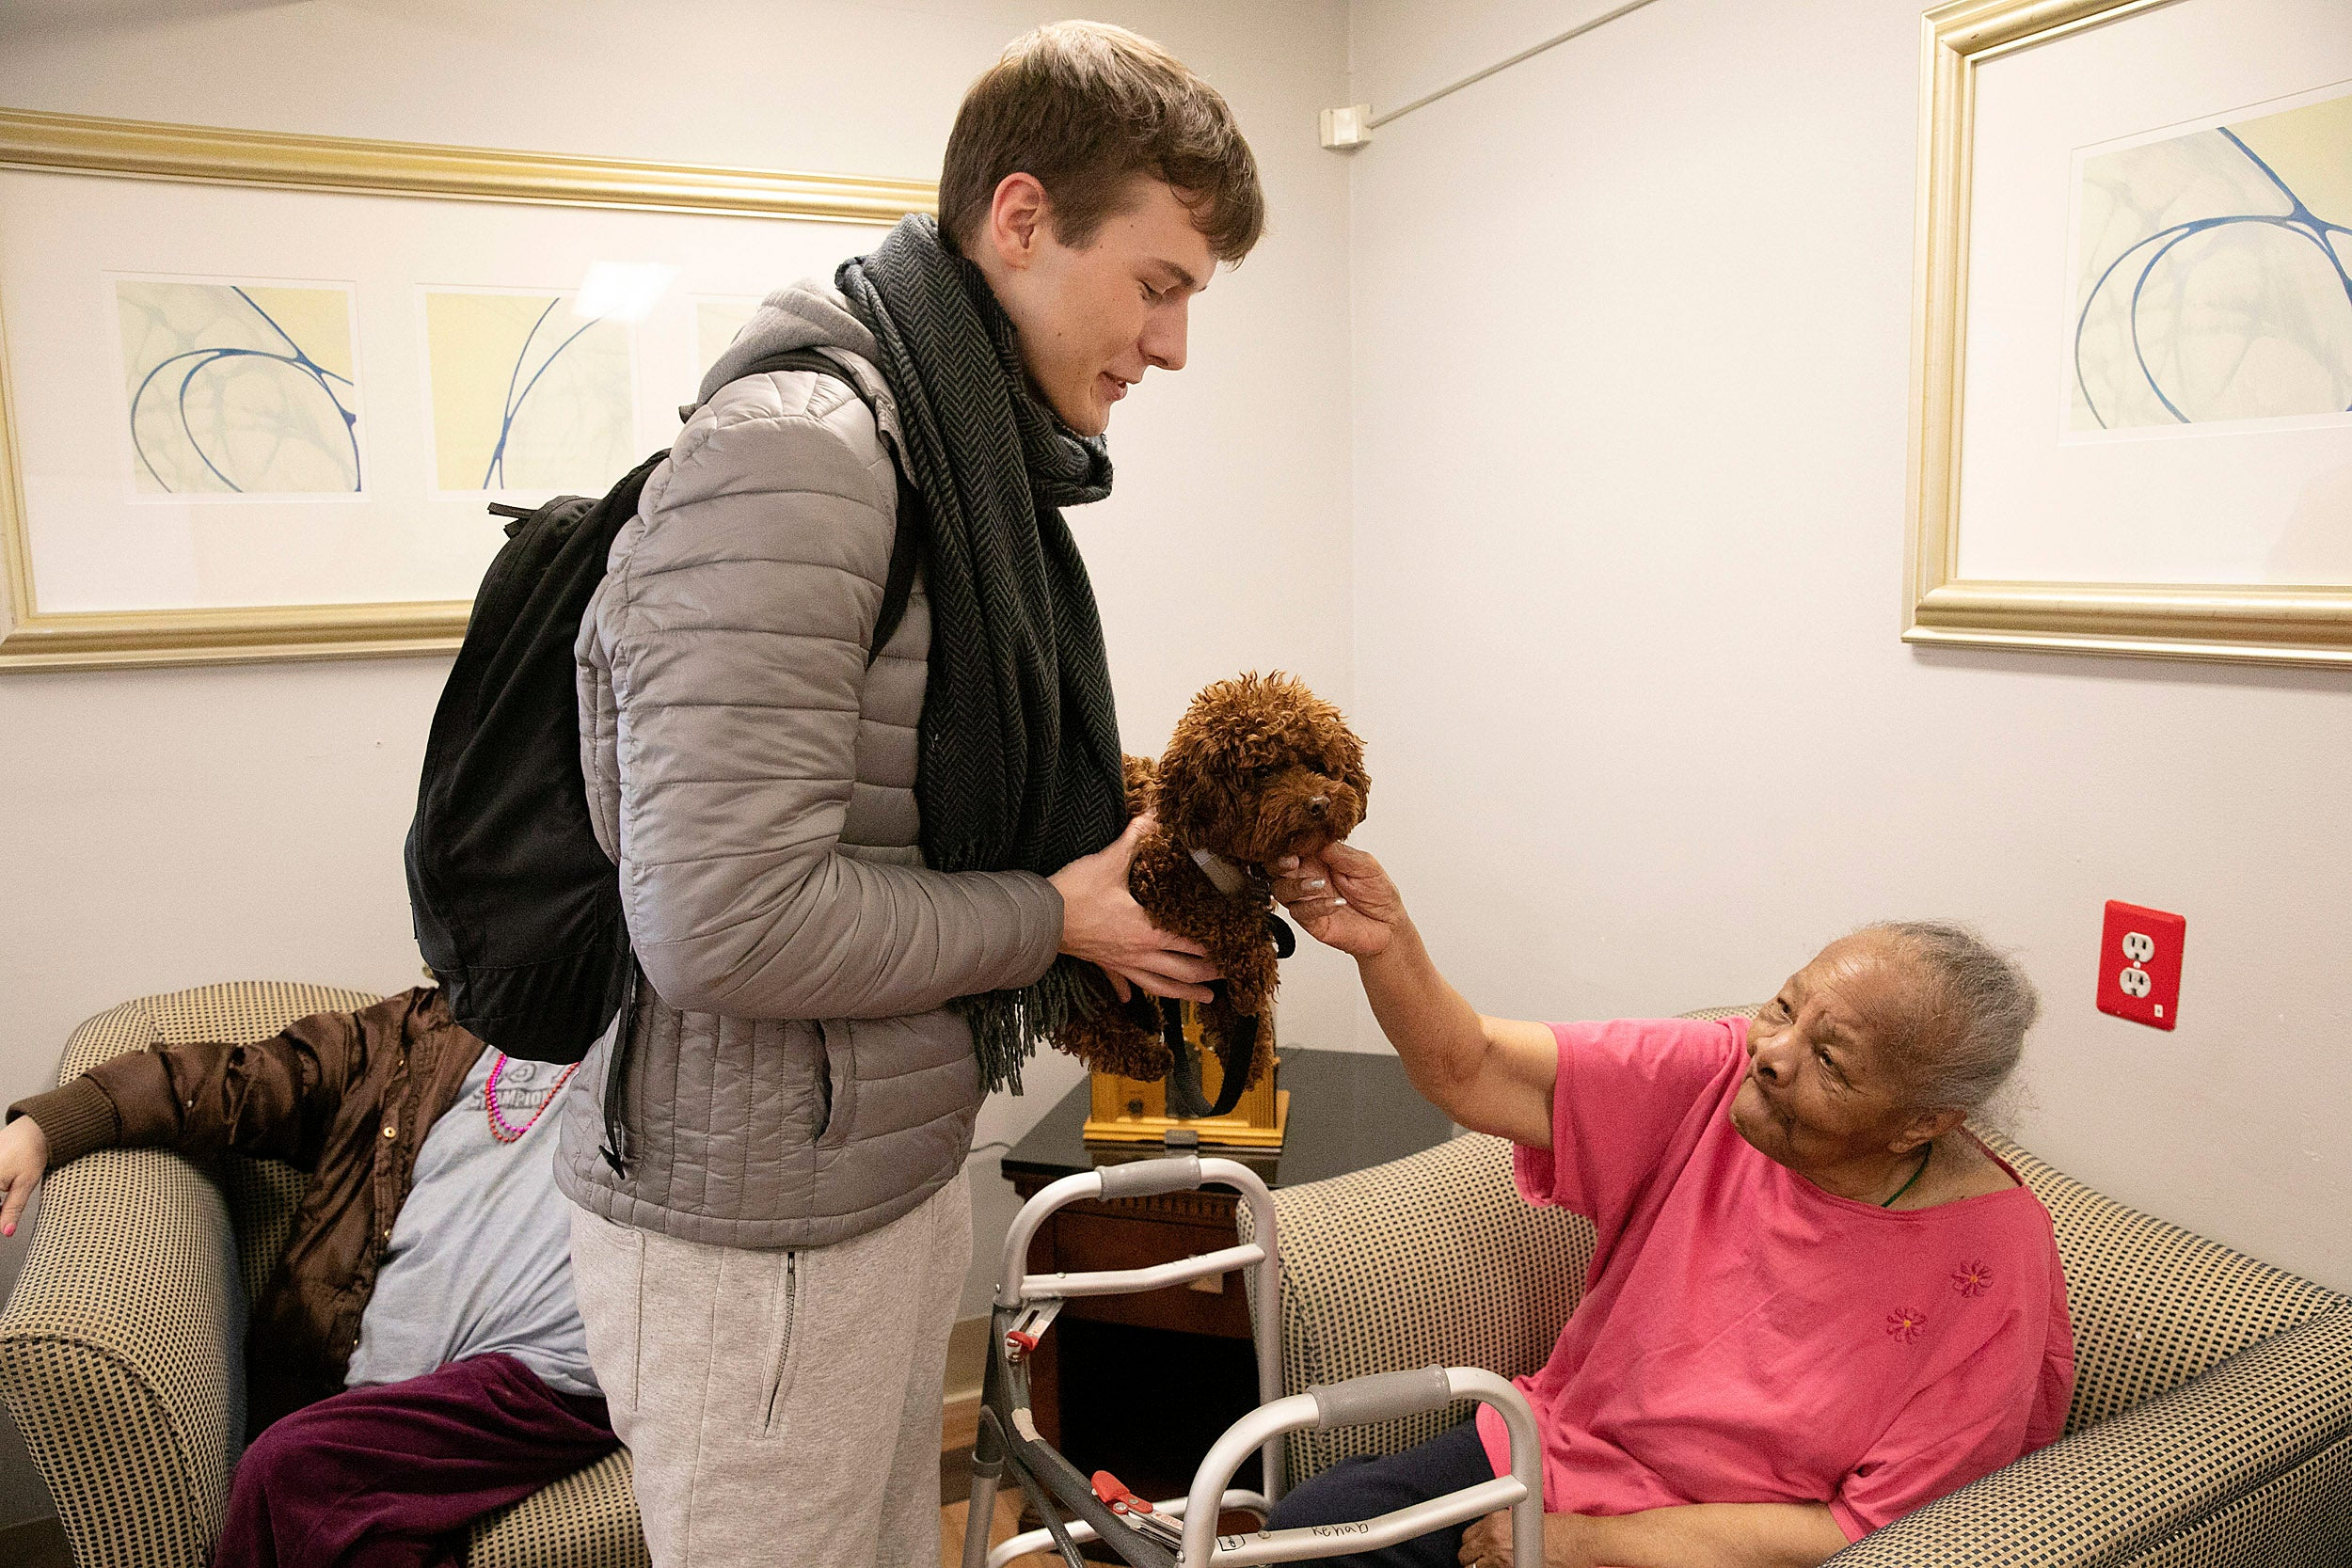 Student holds dog while elderly woman pat dog.